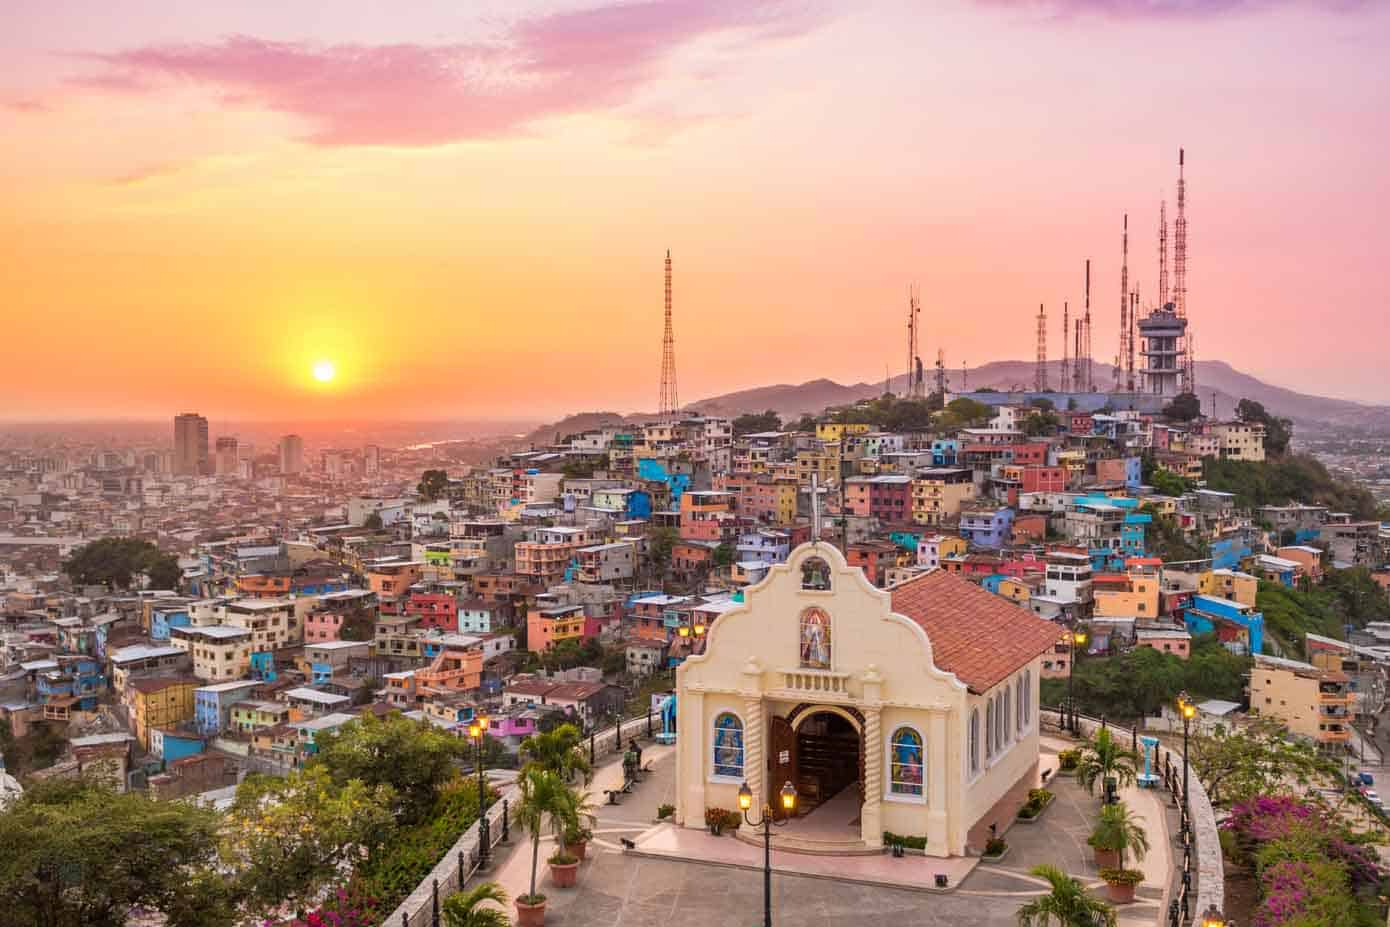 Sunset over hills and sprawling city in Guayquil, Ecuador.